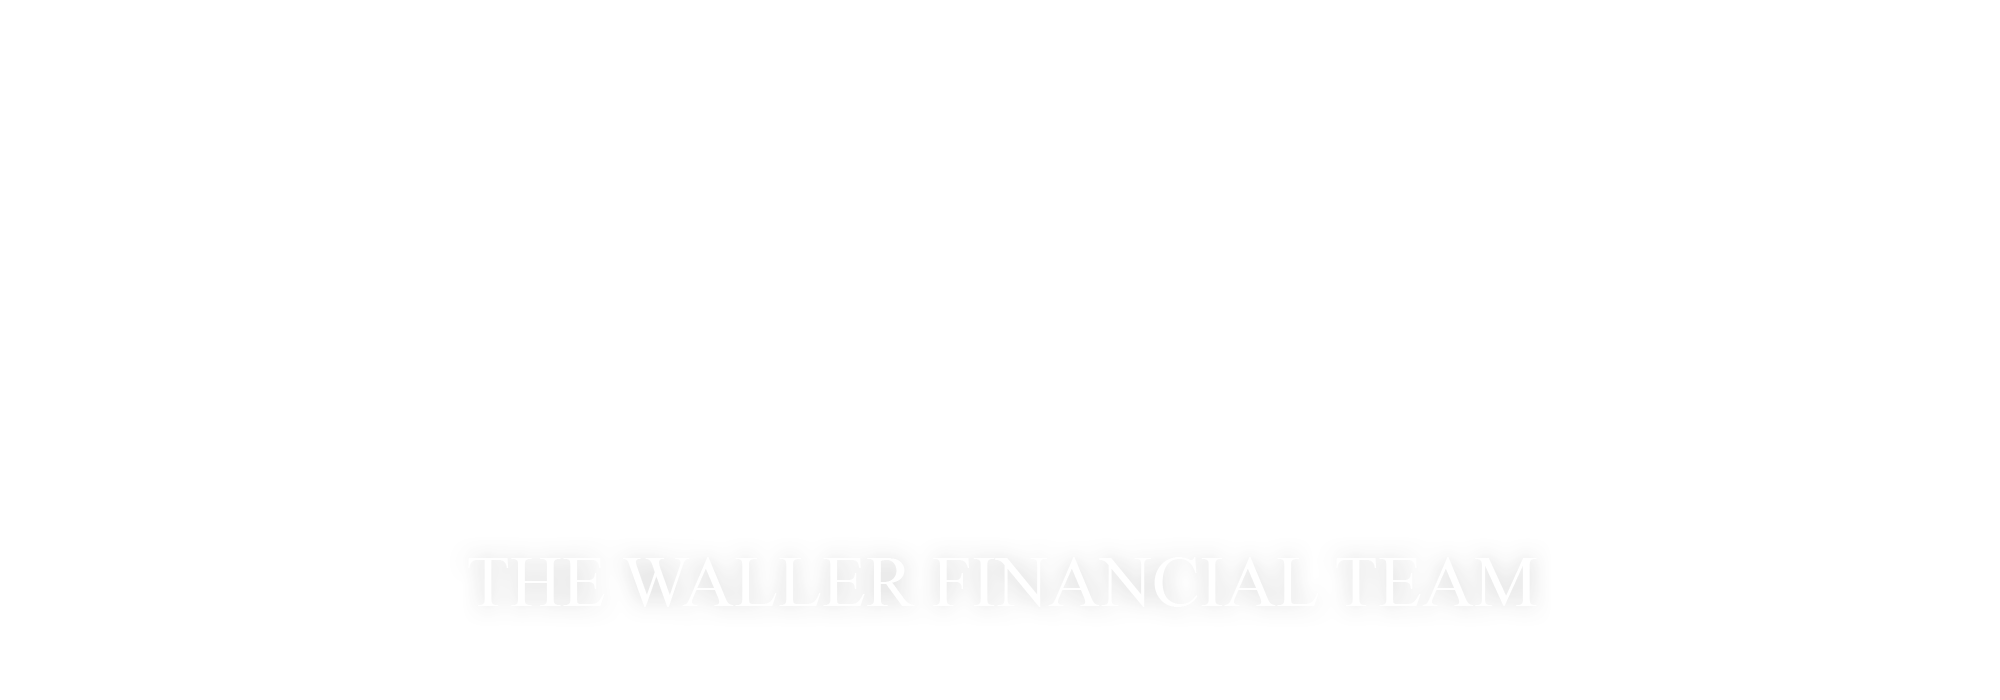 waller-team-tagline